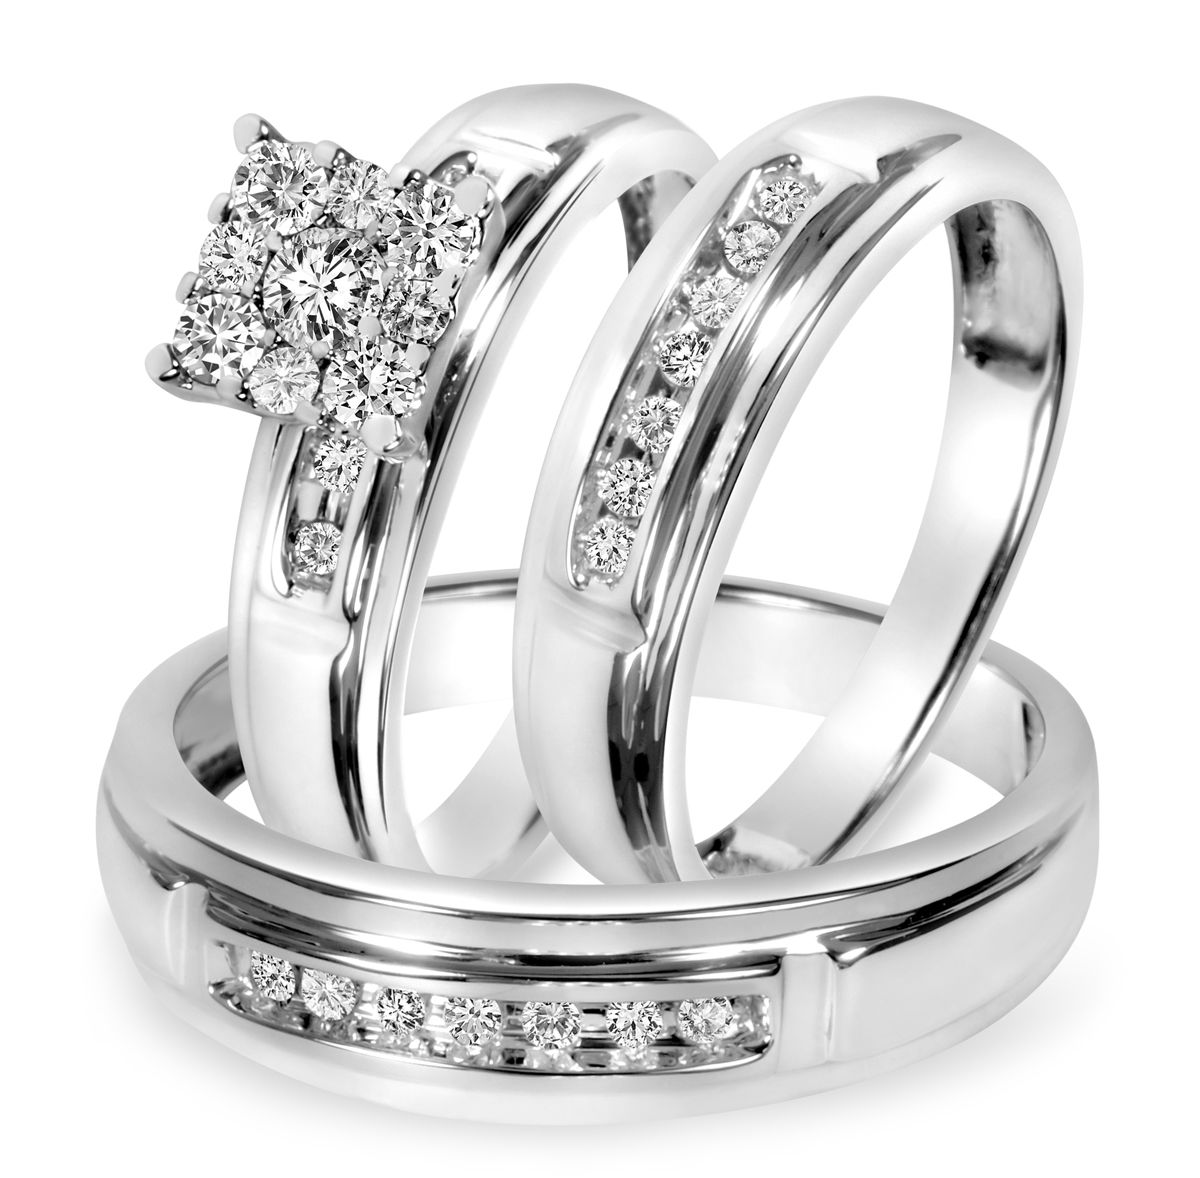 tw diamond trio matching wedding ring set 10k white gold - Trio Wedding Rings